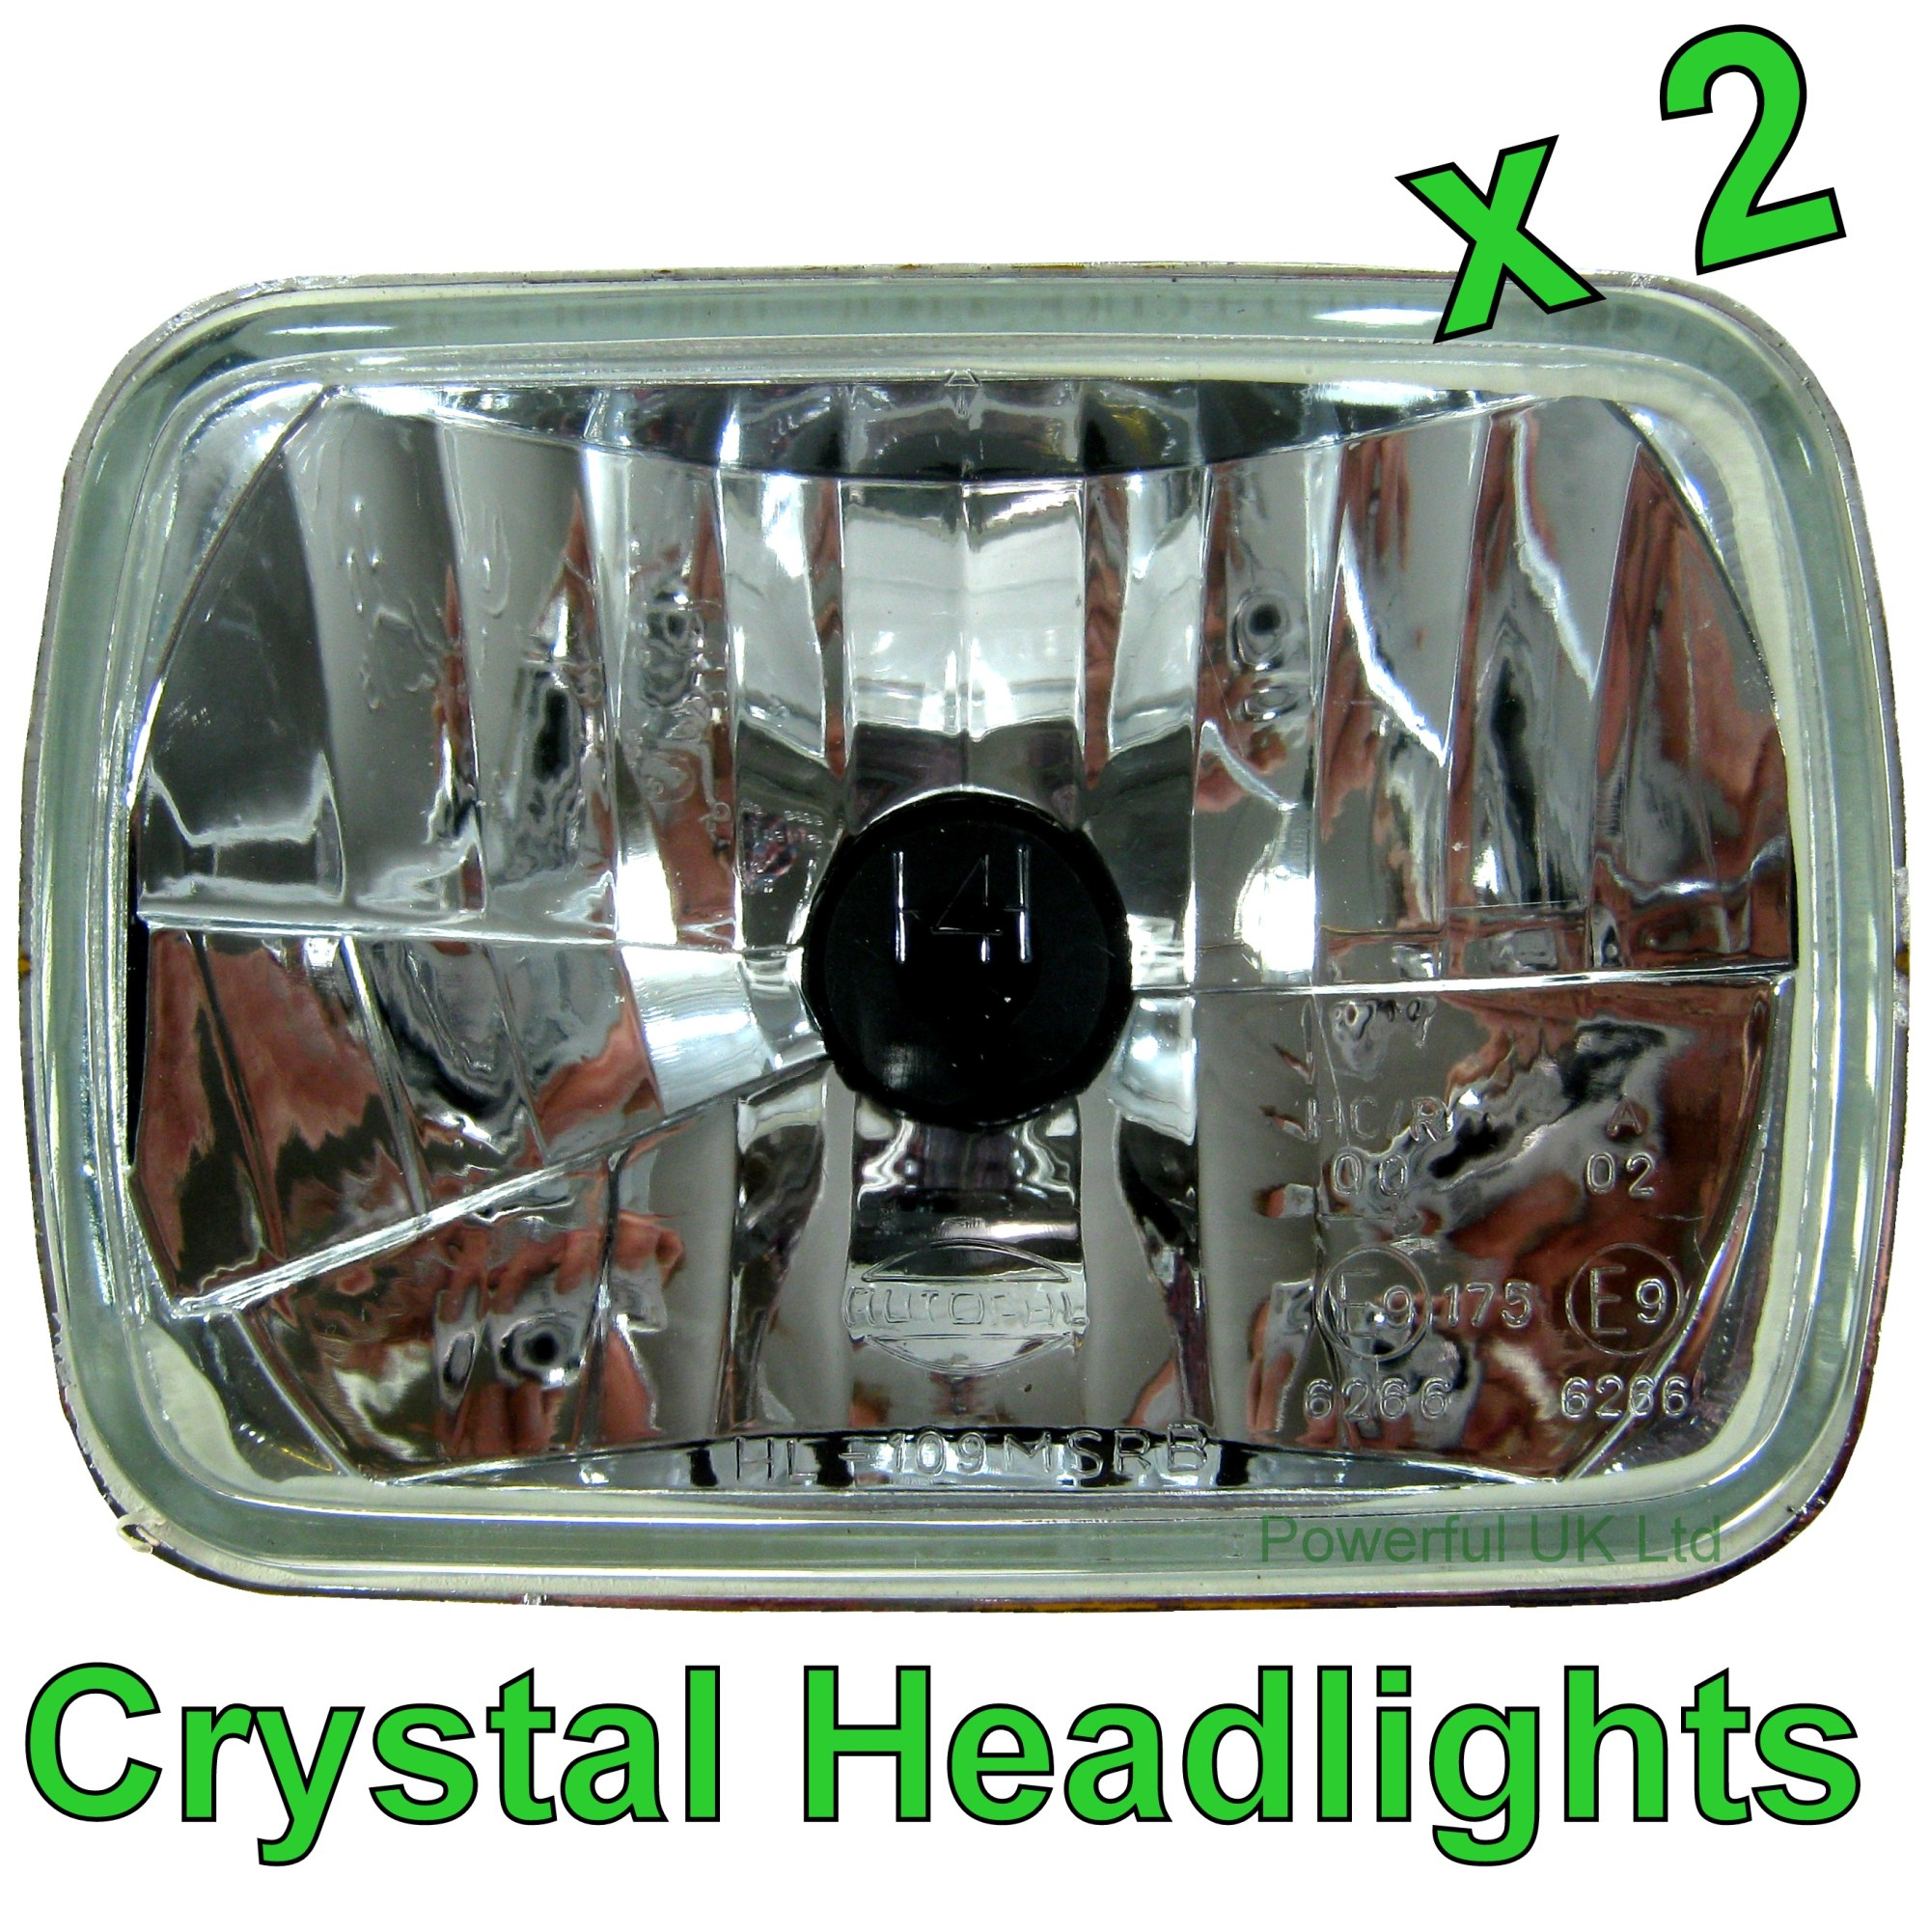 hight resolution of crystal halogen h4 headlight upgrade kit for daihatsu sportrak air conditioning diagram daihatsu rugger headlight circuit diagram